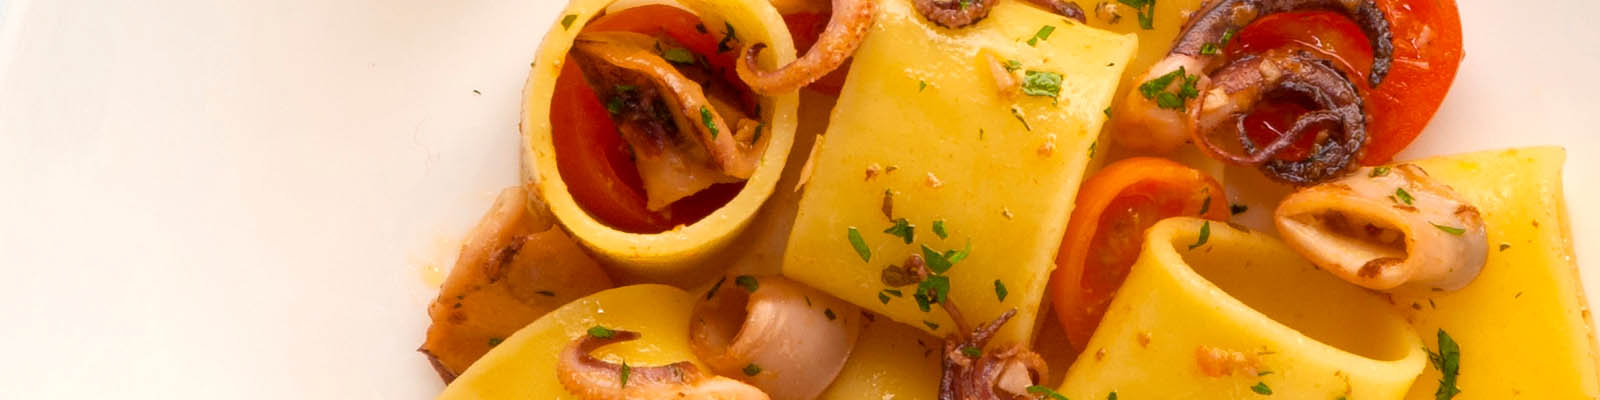 Pasta Garofalo - Calamarata with squid